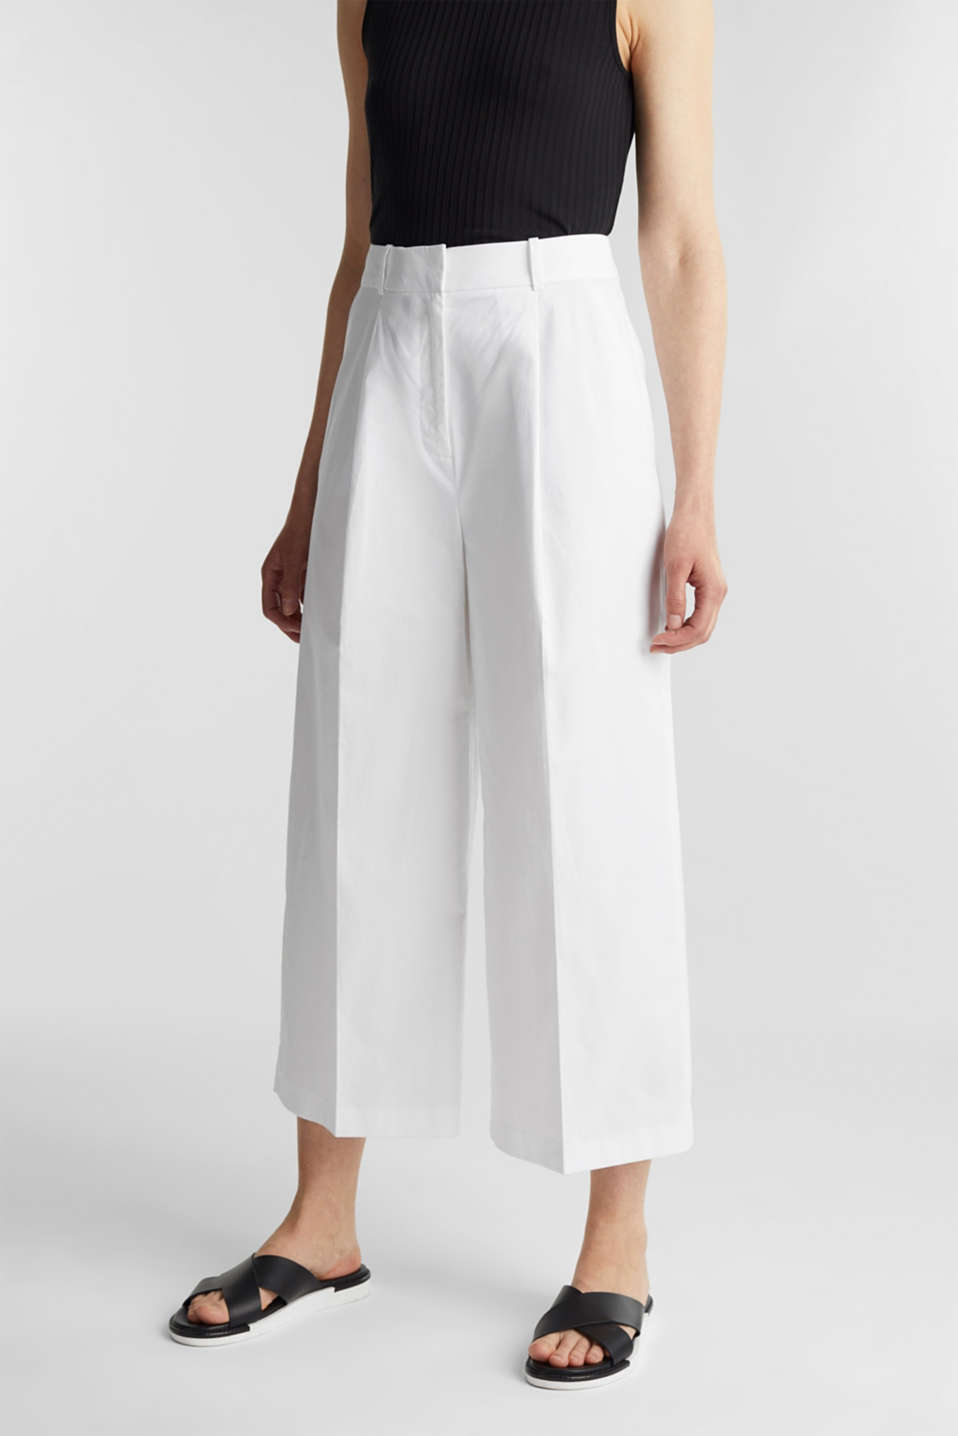 Esprit - Culottes with a fine sheen